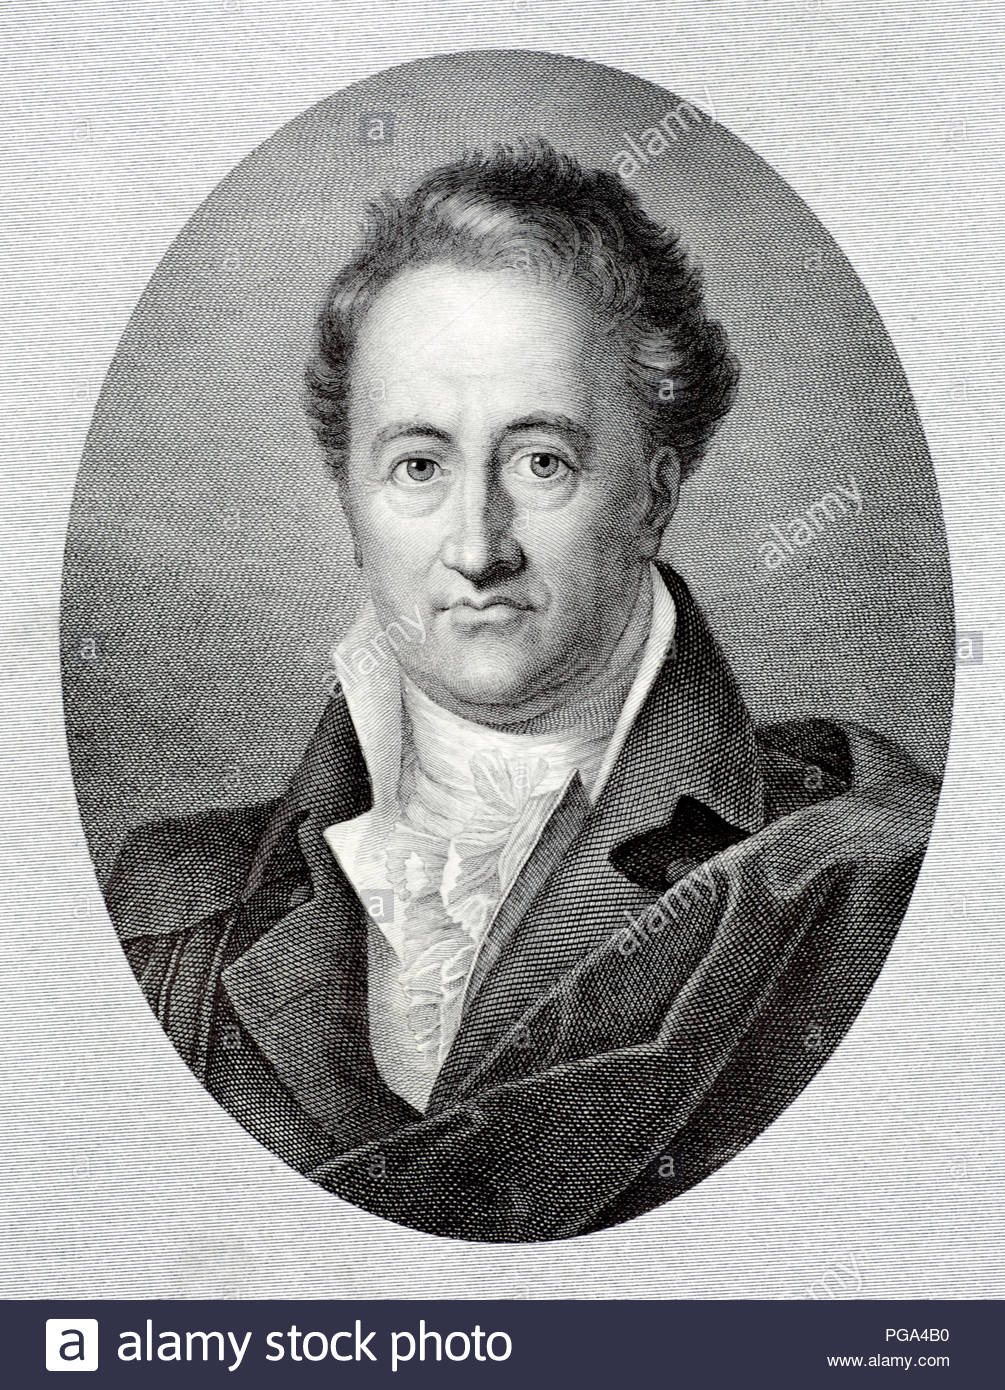 Johann Wolfgang von Goethe portrait 1749 – 1832 was a German writer and statesman. His works include four novels; epic and lyric poetry; prose and verse dramas; memoirs; an autobiography; literary and aesthetic criticism; and treatises on botany, anatomy, and colour, antique illustration from 1880 - Stock Image